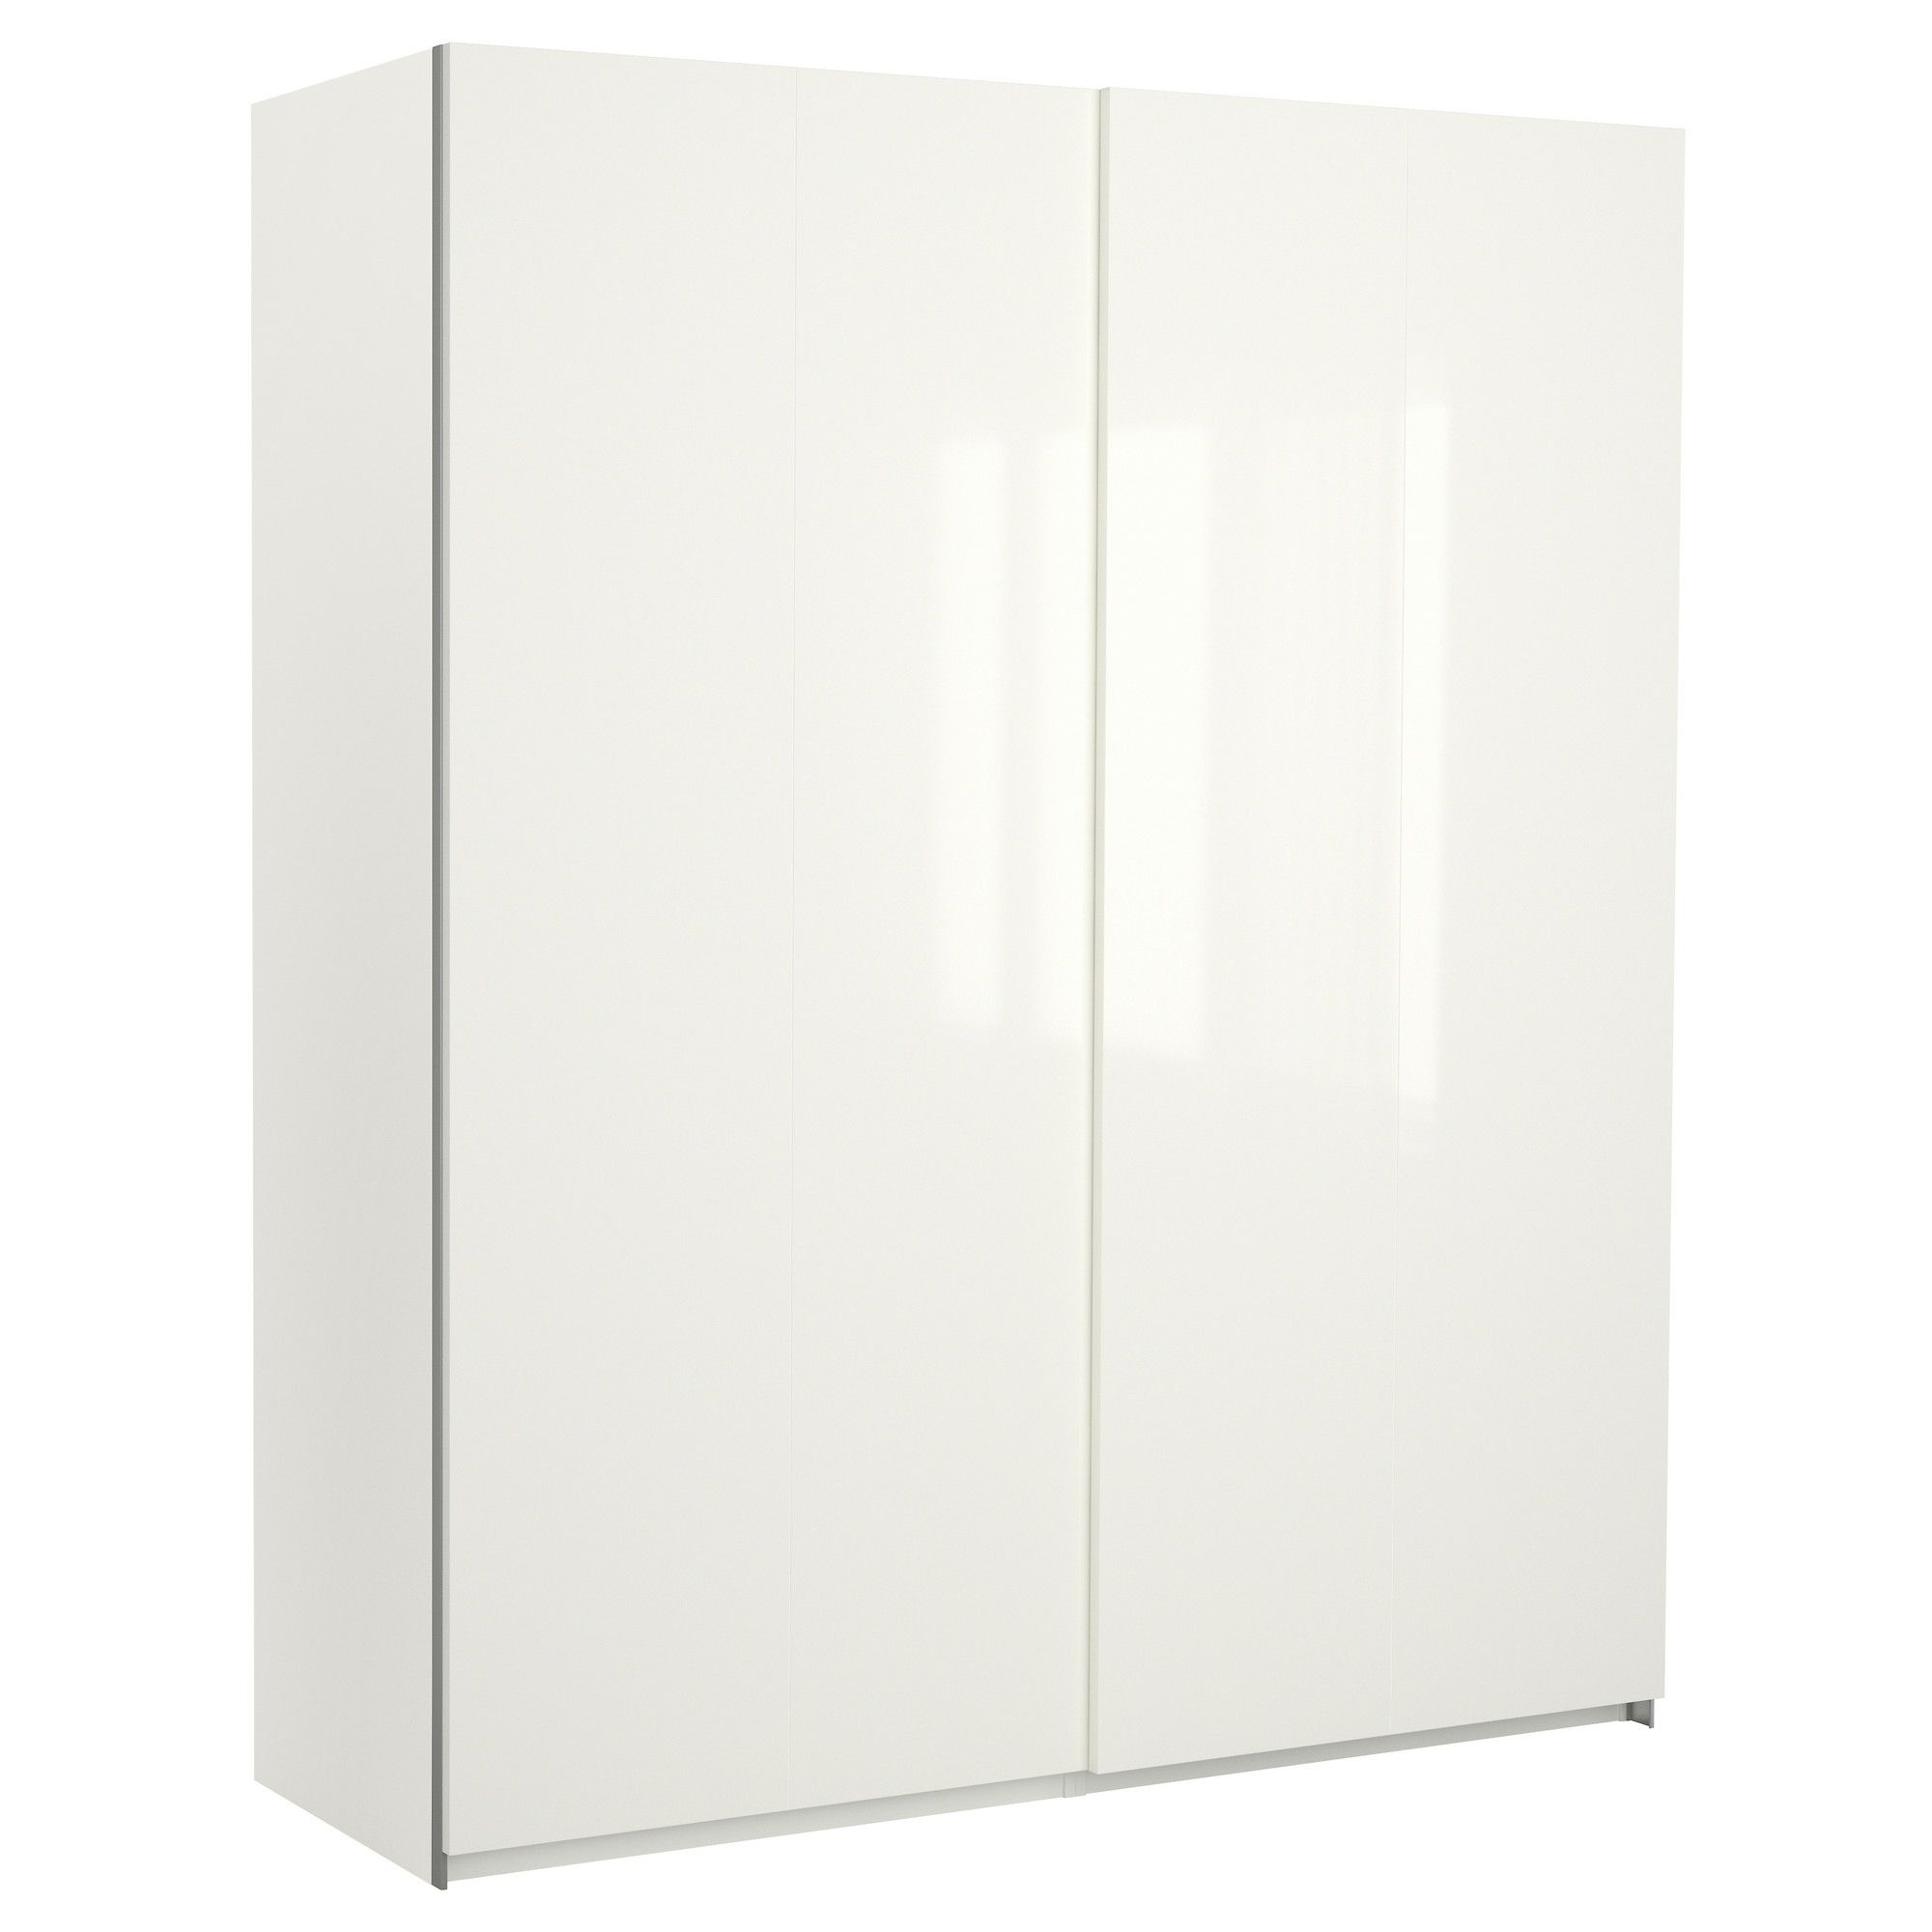 Pax Wardrobe With Sliding Doors White/hasvik High Gloss/white Within Trendy Tall White Gloss Wardrobes (View 10 of 15)